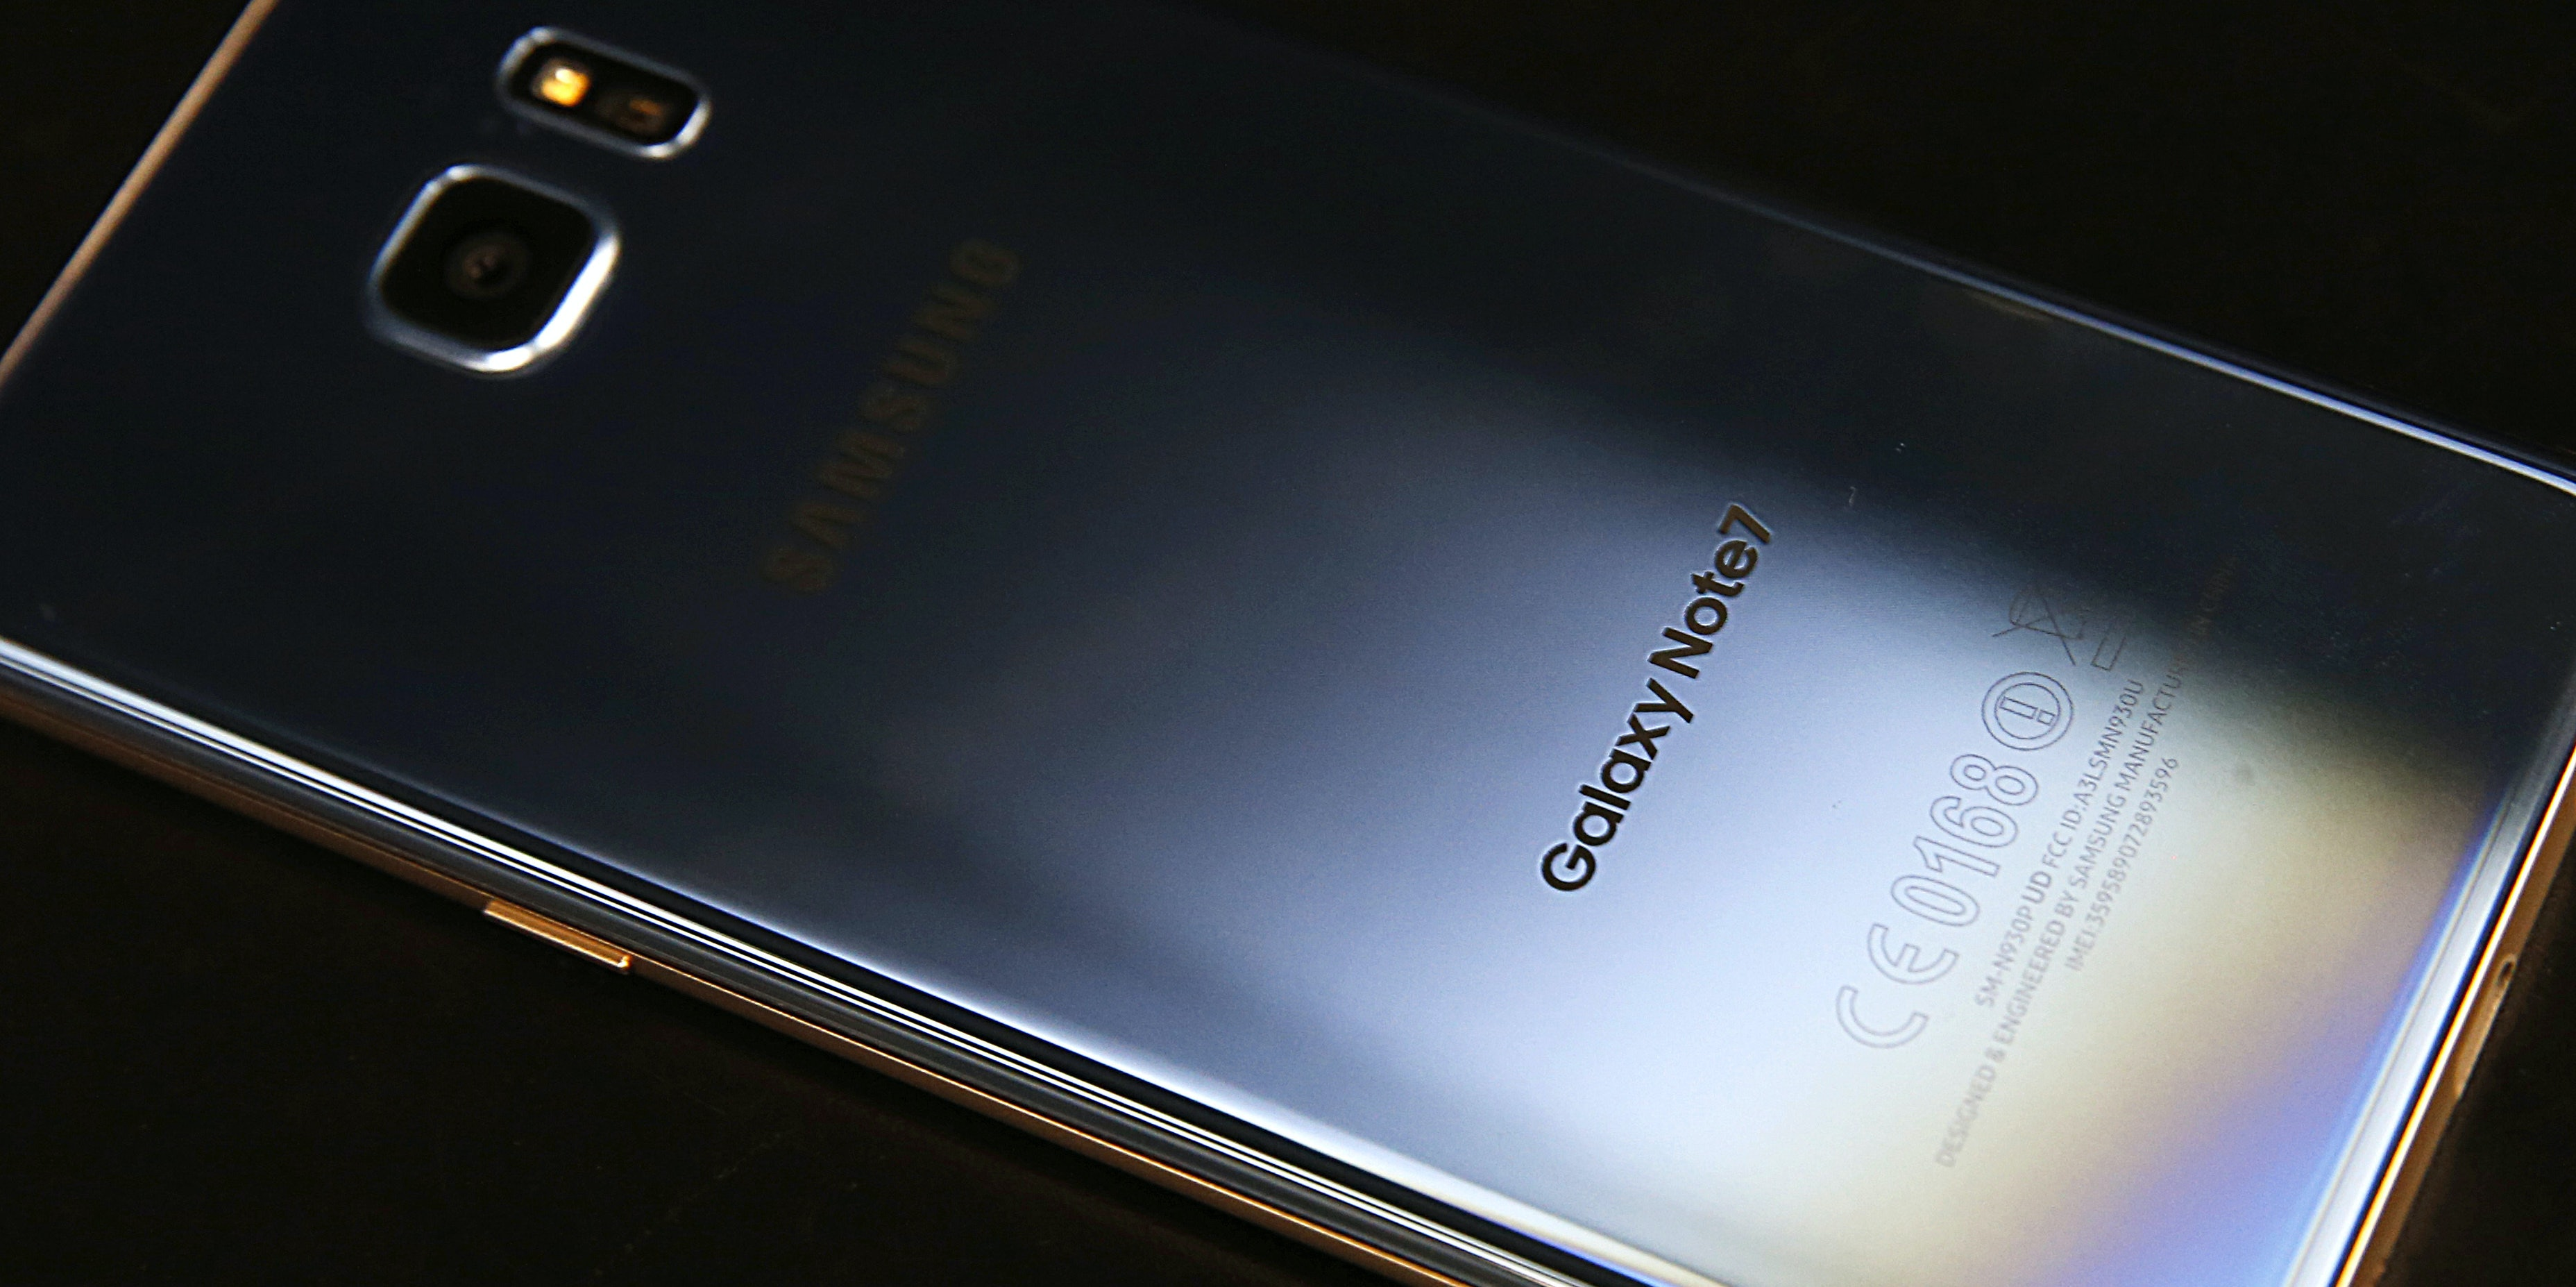 OREM, UT - SEPTEMBER 15: A Samsung Galaxy Note 7 lays on a counter after it was returned to a Best Buy on September 15, 2016 in Orem, Utah.  The Consumer Safety Commission announced today a safety recall on Samsung's new Galaxy Note 7 smartphone after users reported that some of the devices caught fire when charging.  (Photo by George Frey/Getty Images)